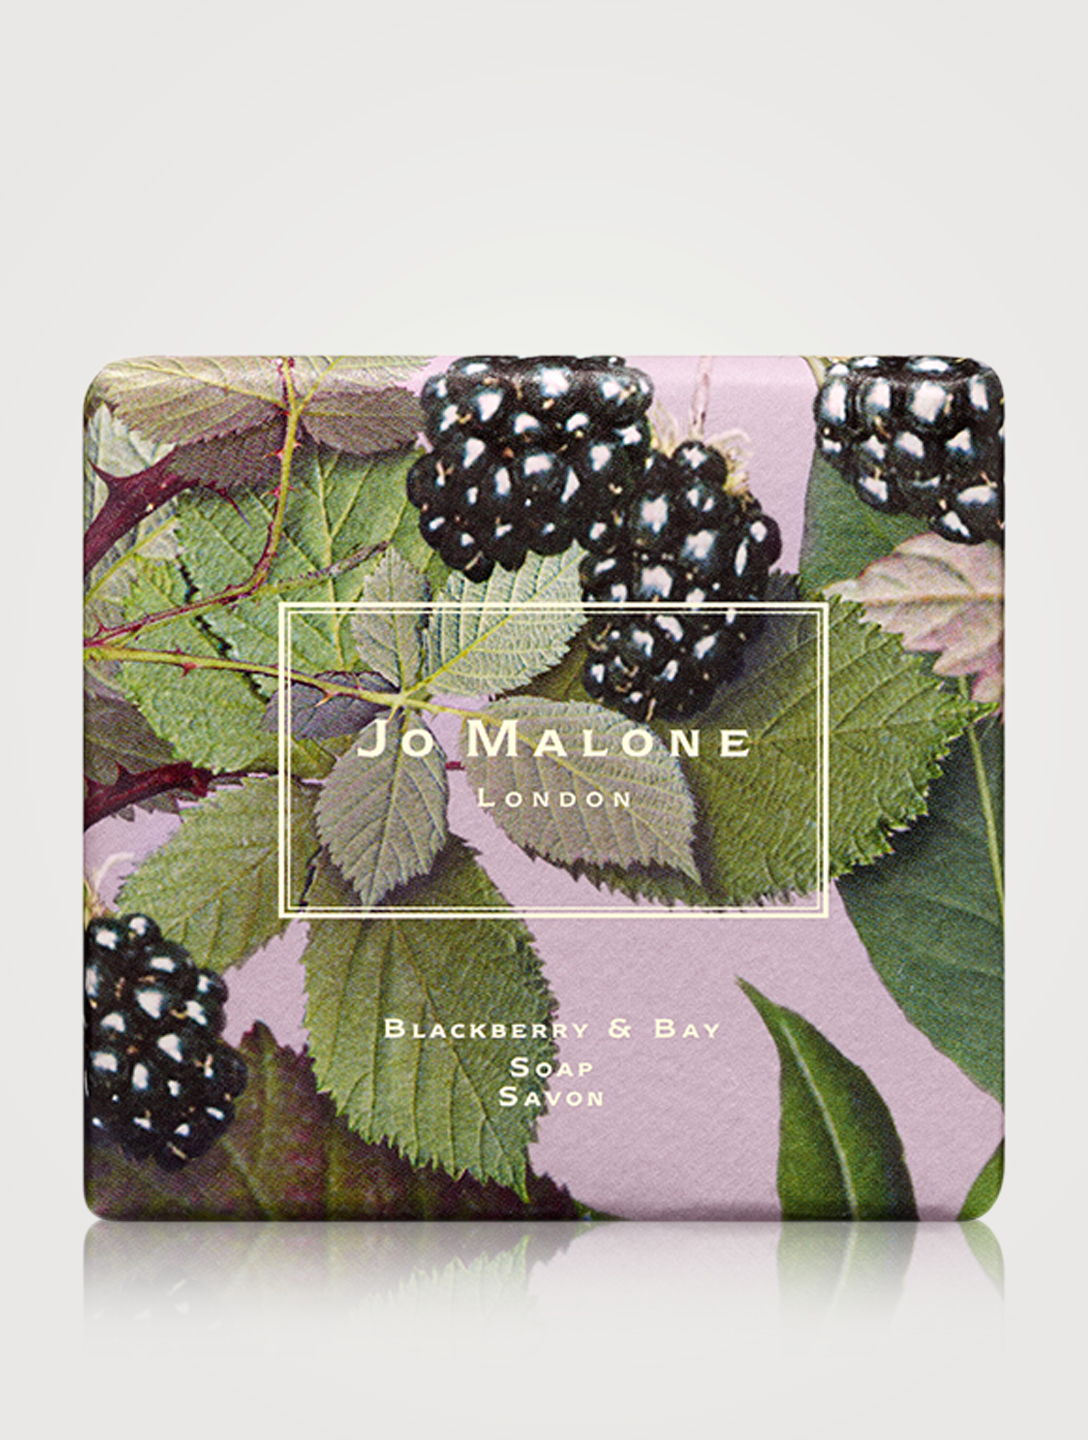 JO MALONE LONDON Savon Blackberry & Bay Beauté